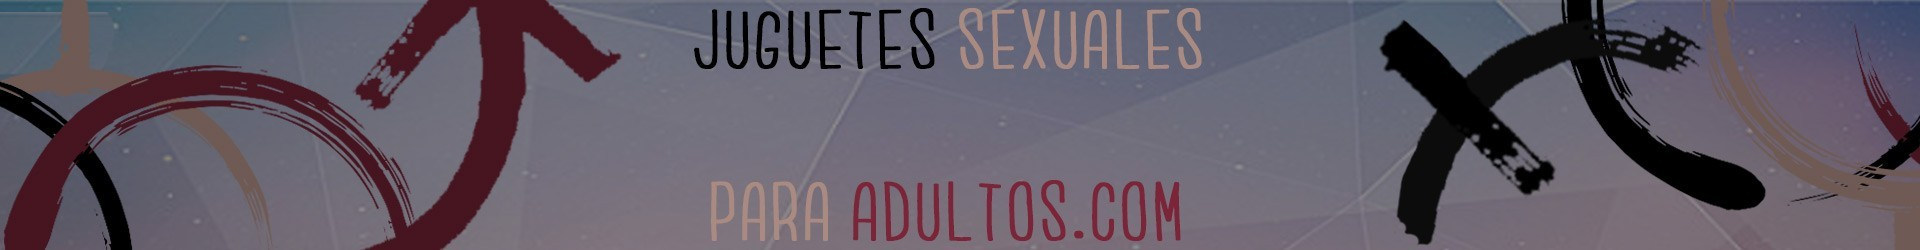 Broches - Sex Shop Juguetes Sexuales